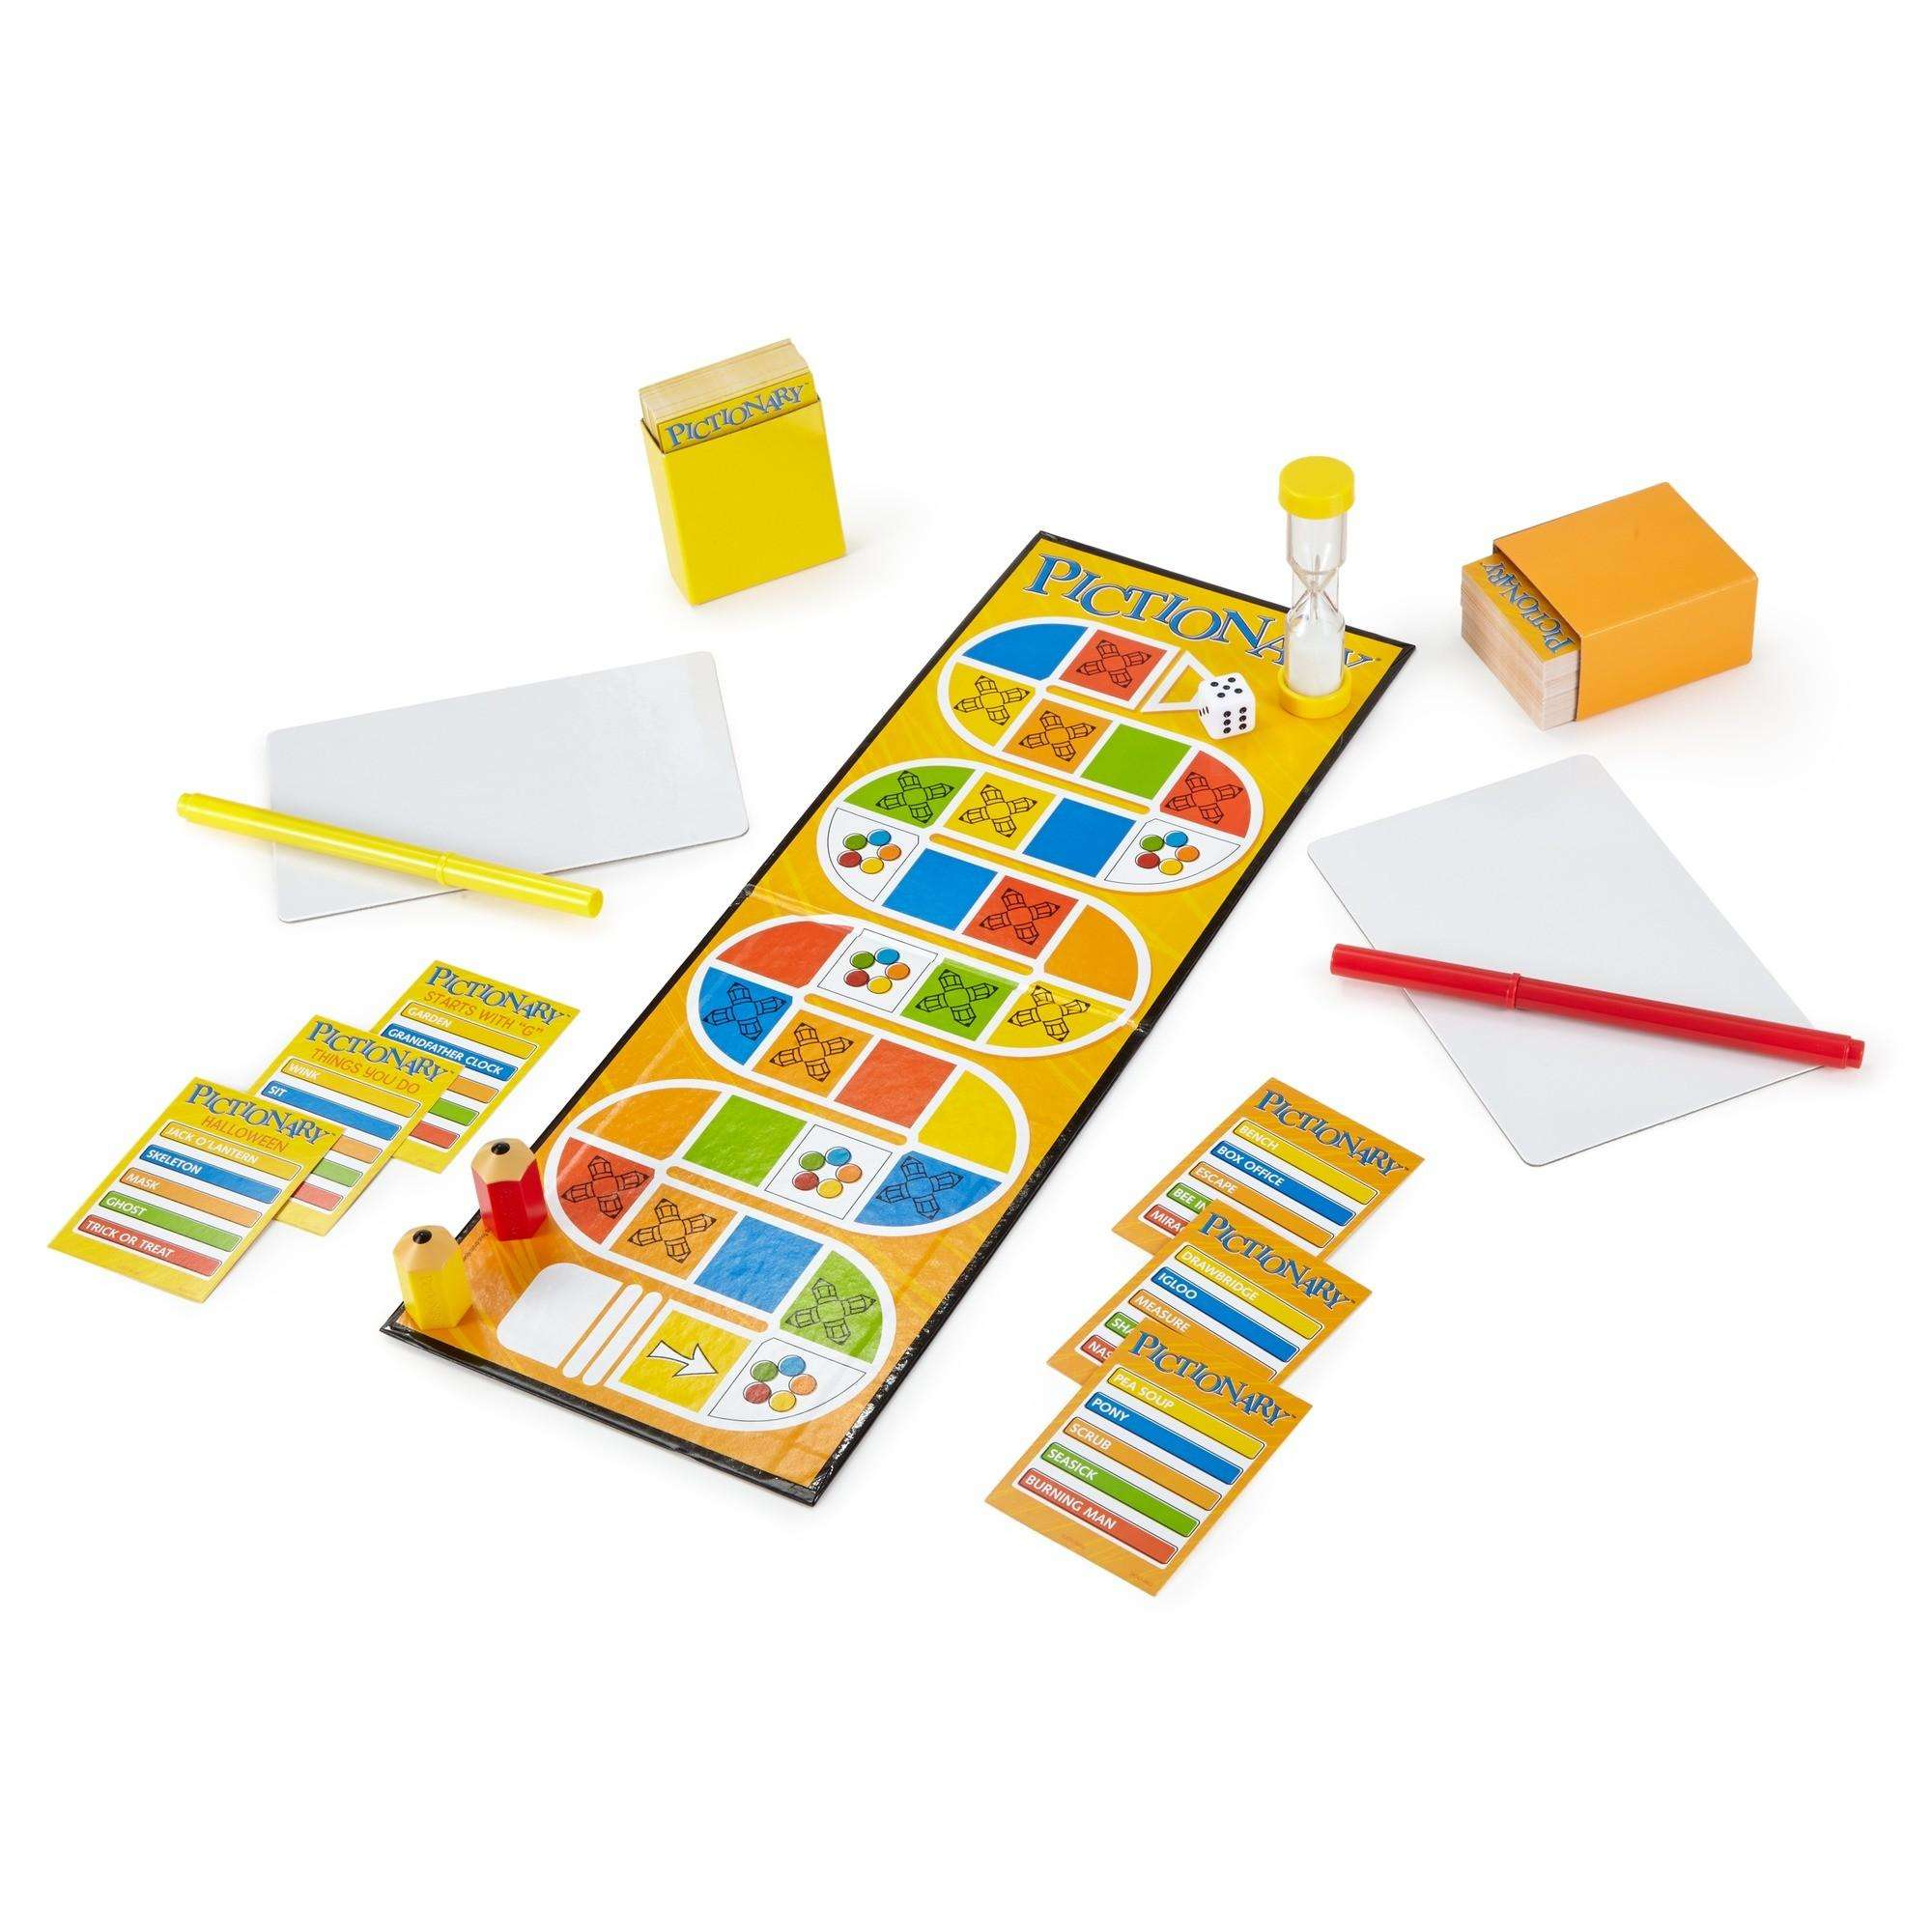 Pictionary Quick-Draw Guessing Game with Adult and Junior Clues - Walmart.com